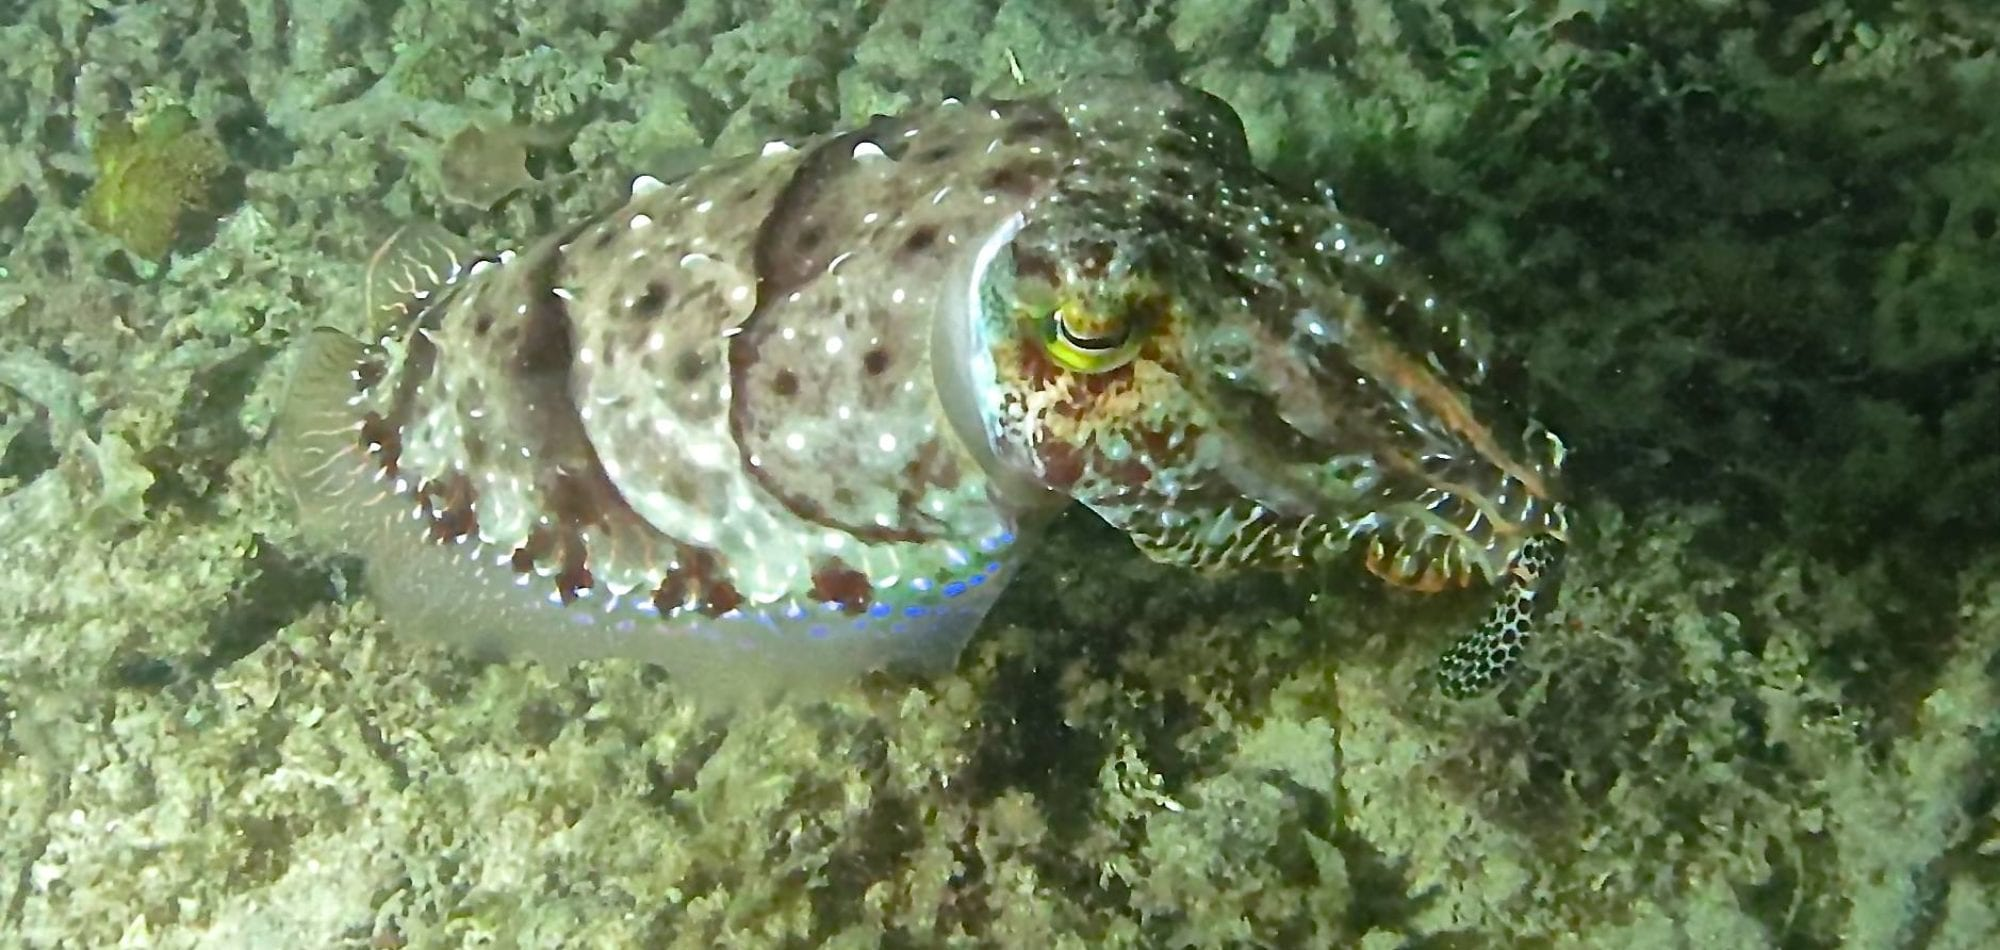 Cairns scuba diving day trip - cuttle fish